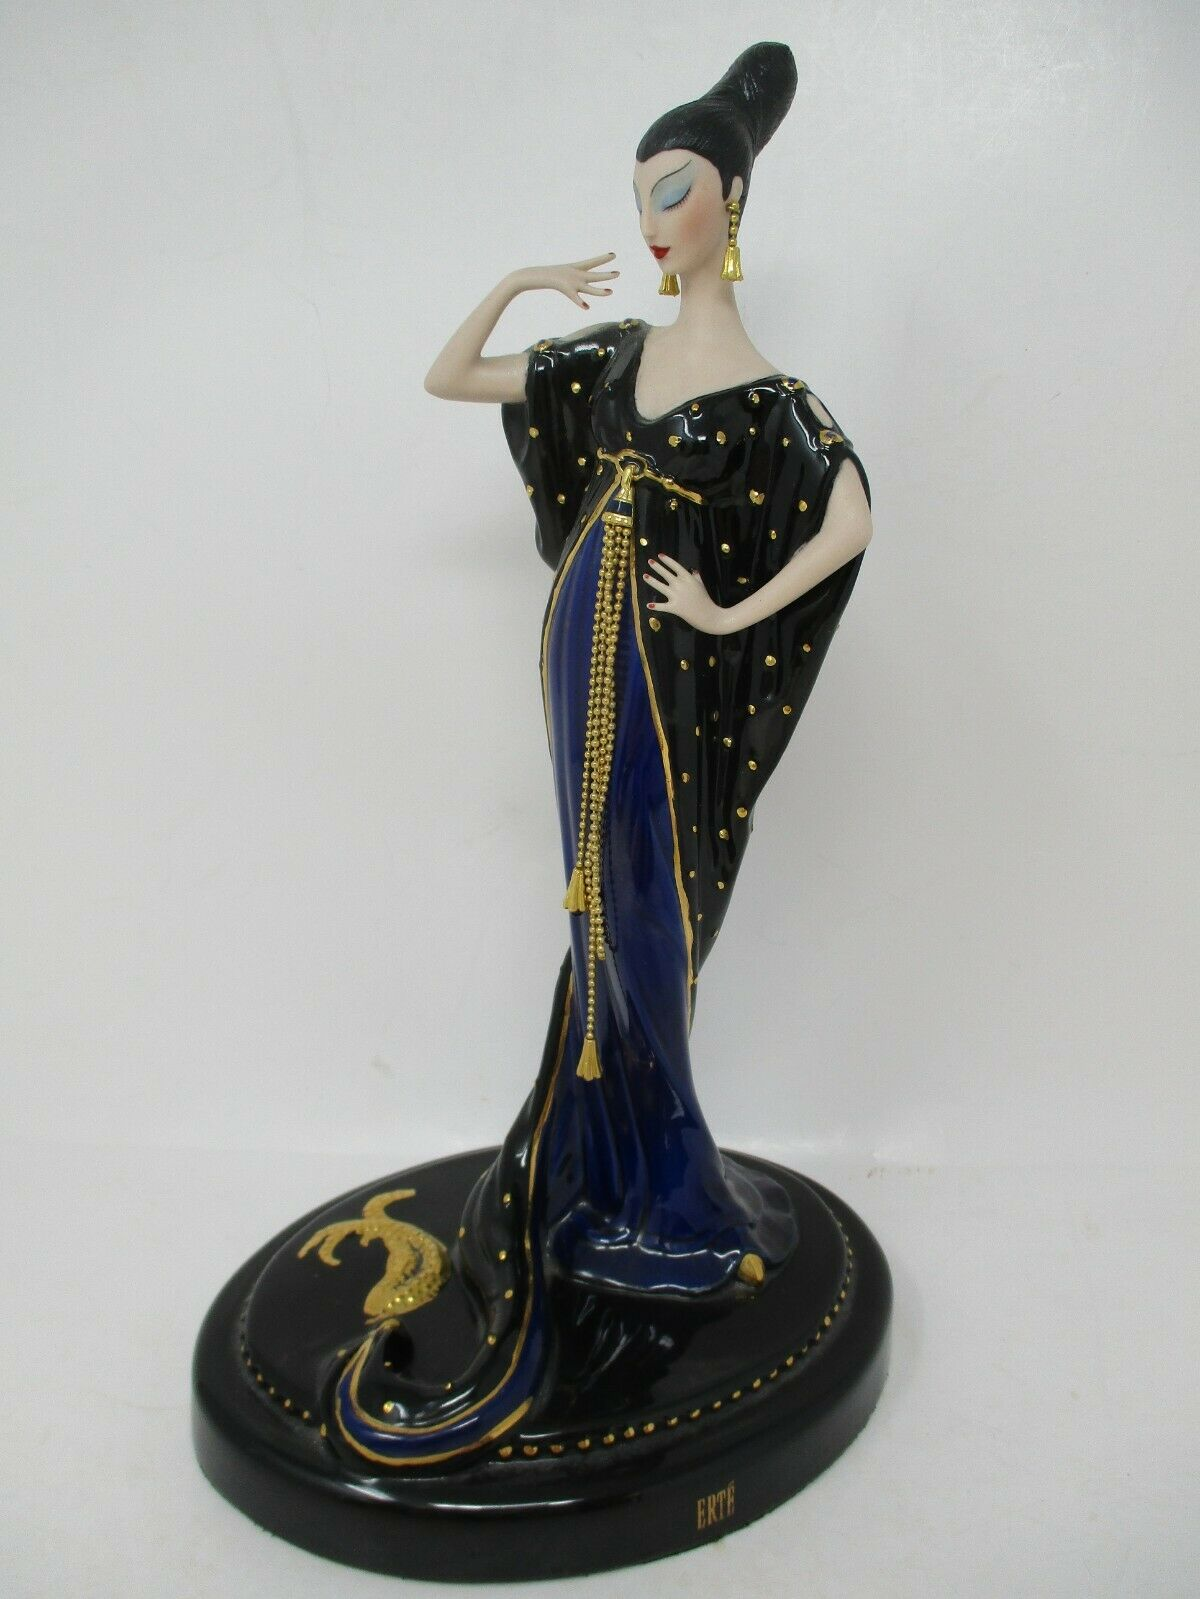 House Of Erte Moonlight Mystique Porcelain Figurine Limited Edition